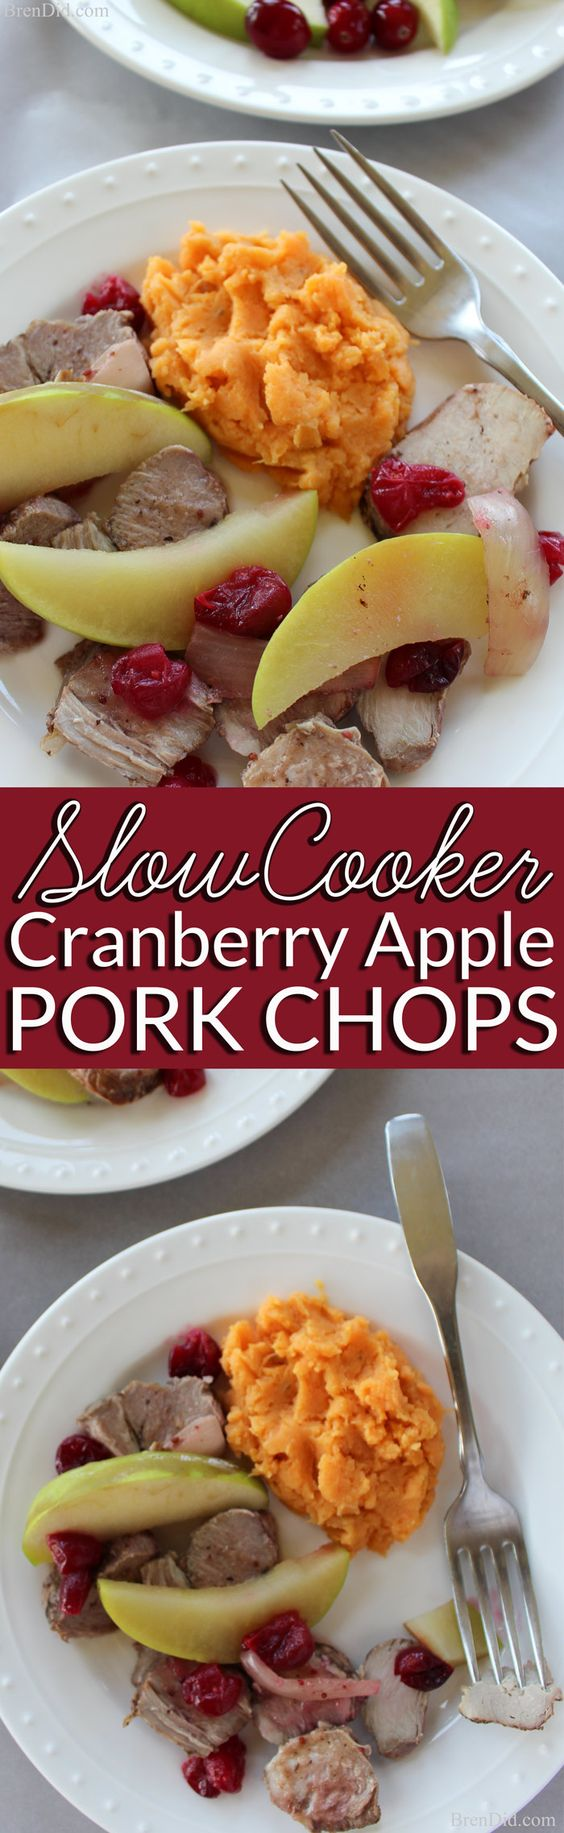 pot pork chops or pork ribs simmer with cranberries, onion and apples ...